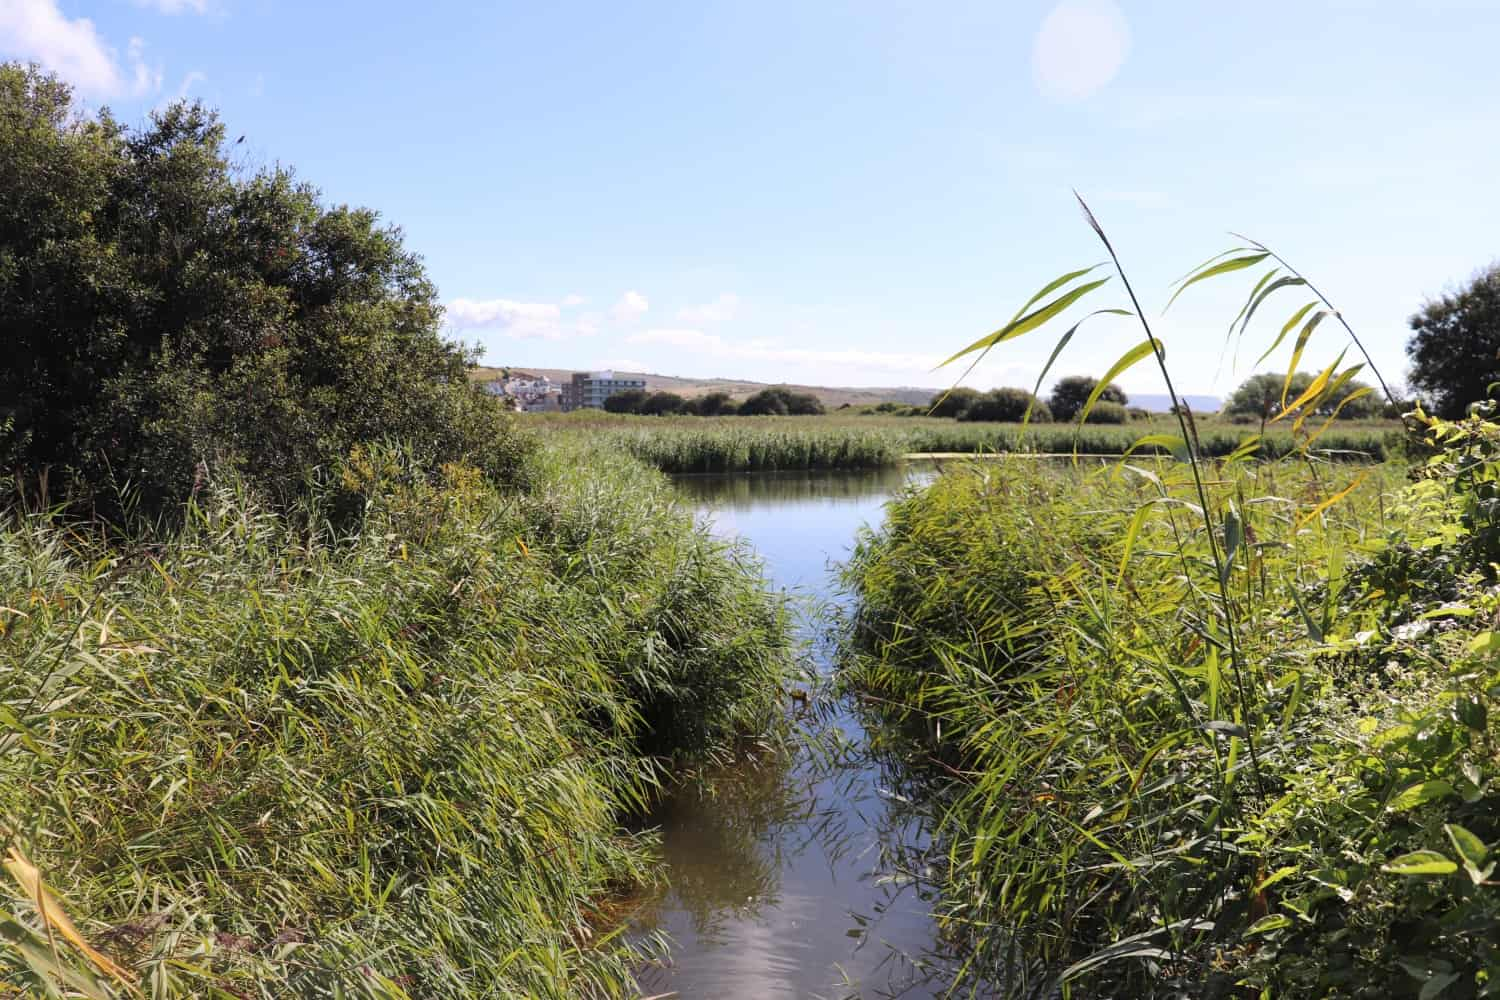 RSPB Lodmoor and Lodmoor Country Park